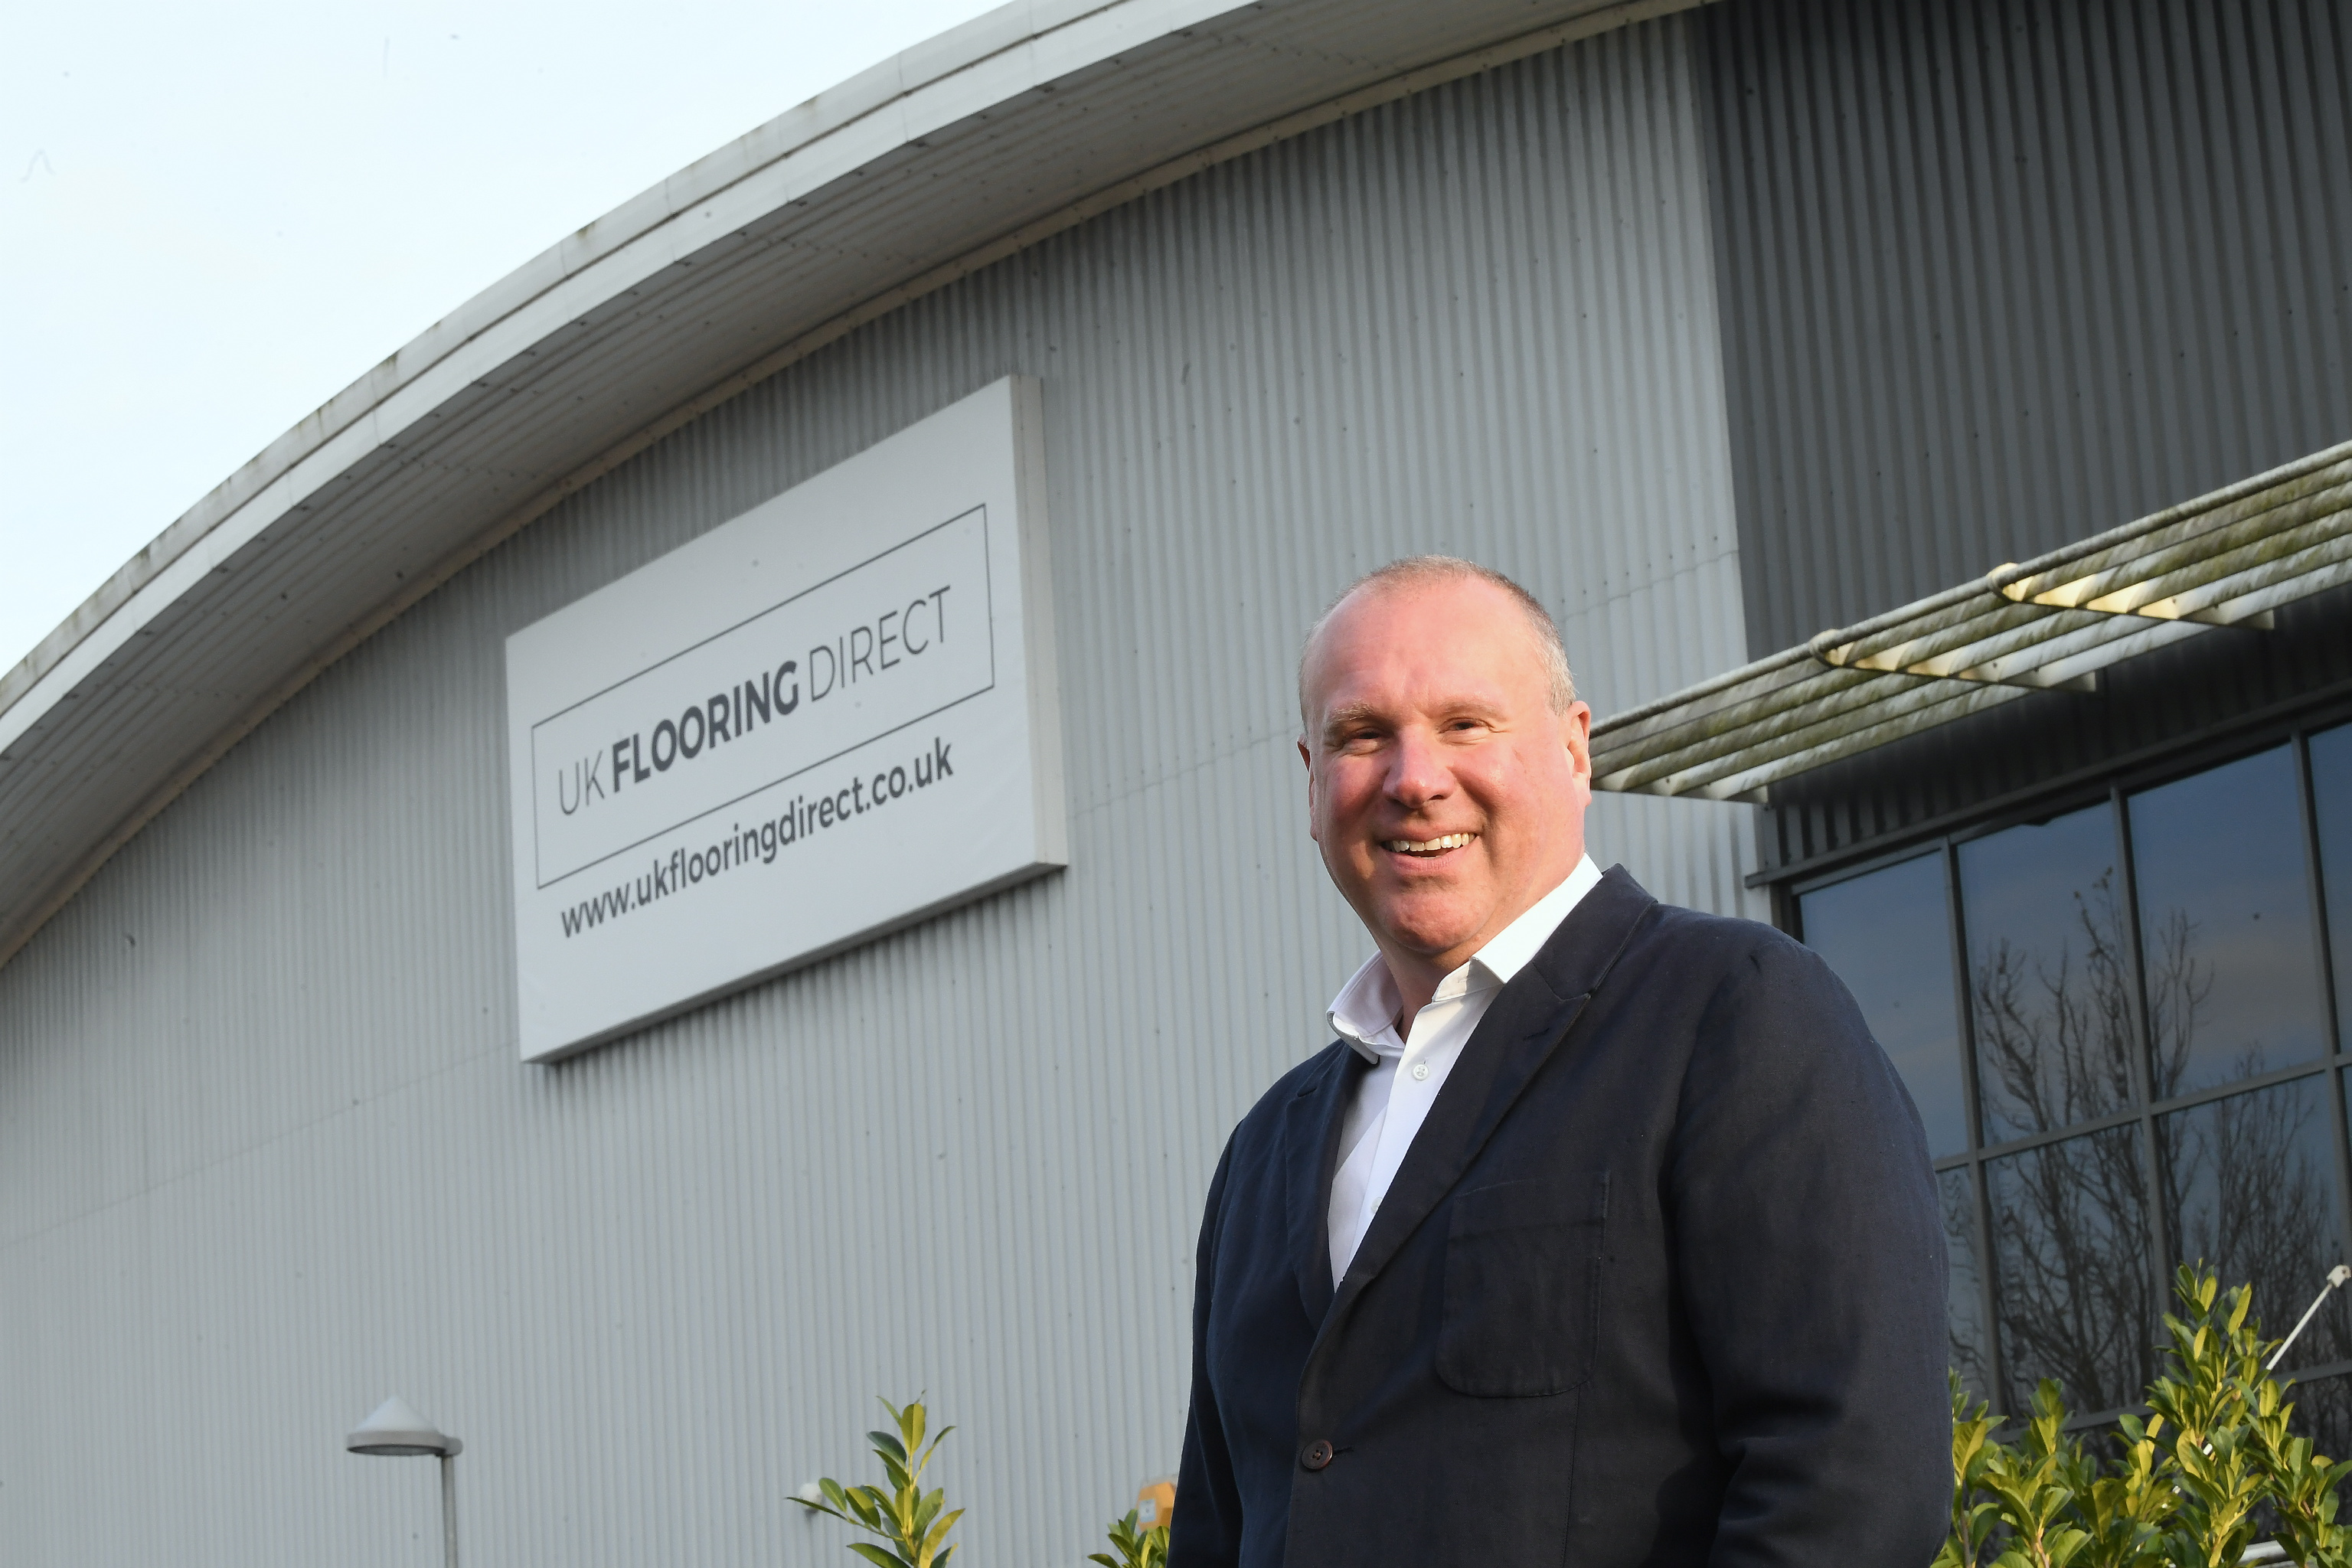 Leicestershire-based online flooring retailer makes senior appointment as it eyes further growth